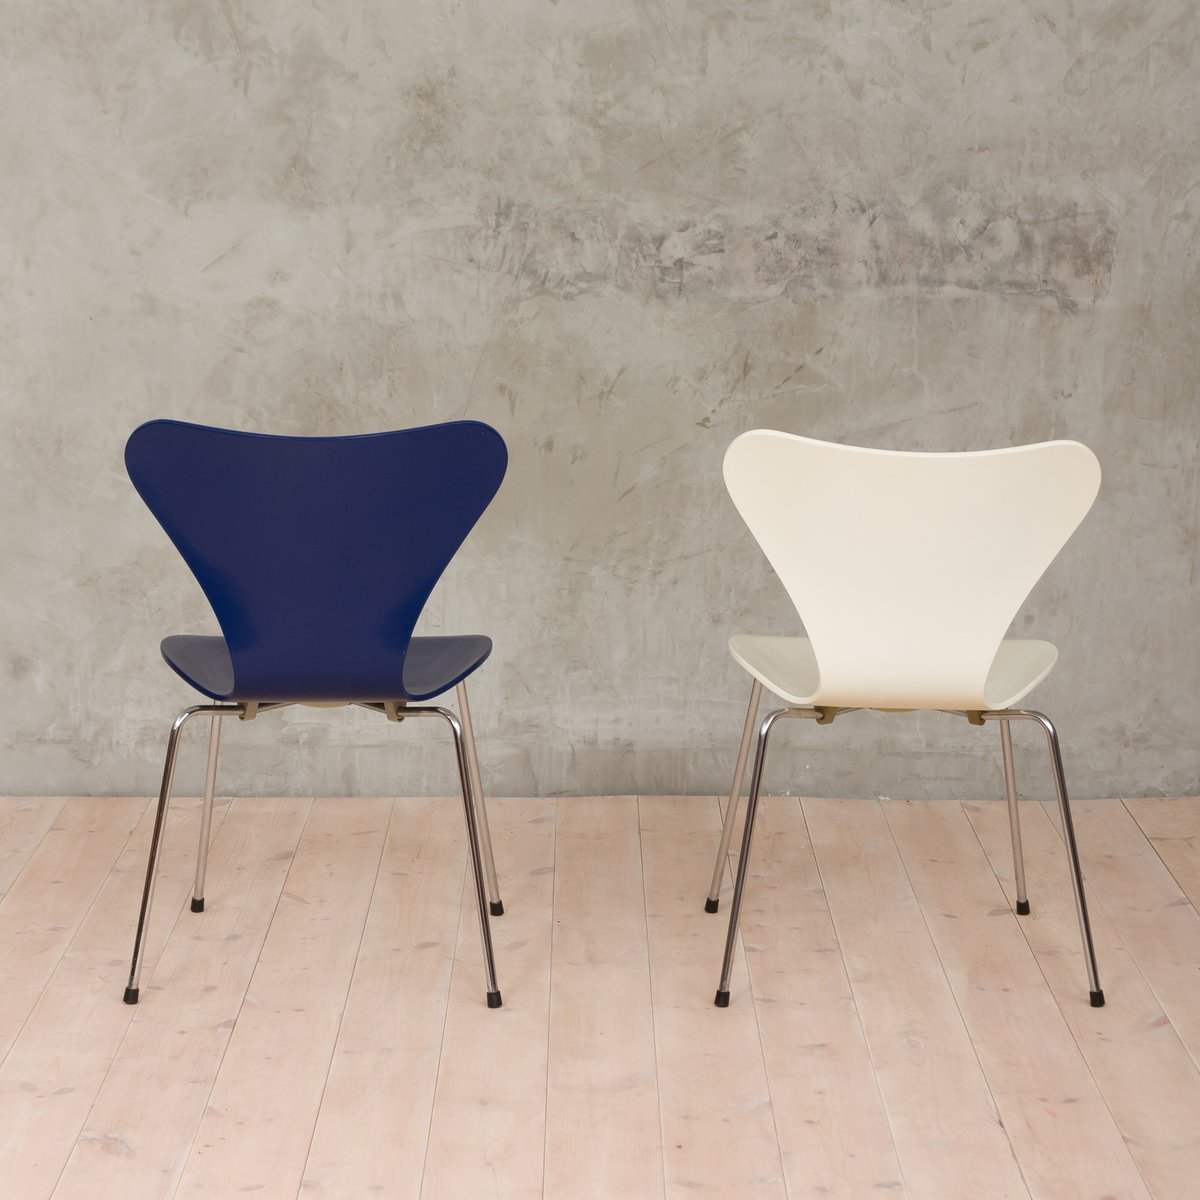 3107 chairs by arne jacobsen for fritz hansen 1980s set of 2 for sale at pamono. Black Bedroom Furniture Sets. Home Design Ideas